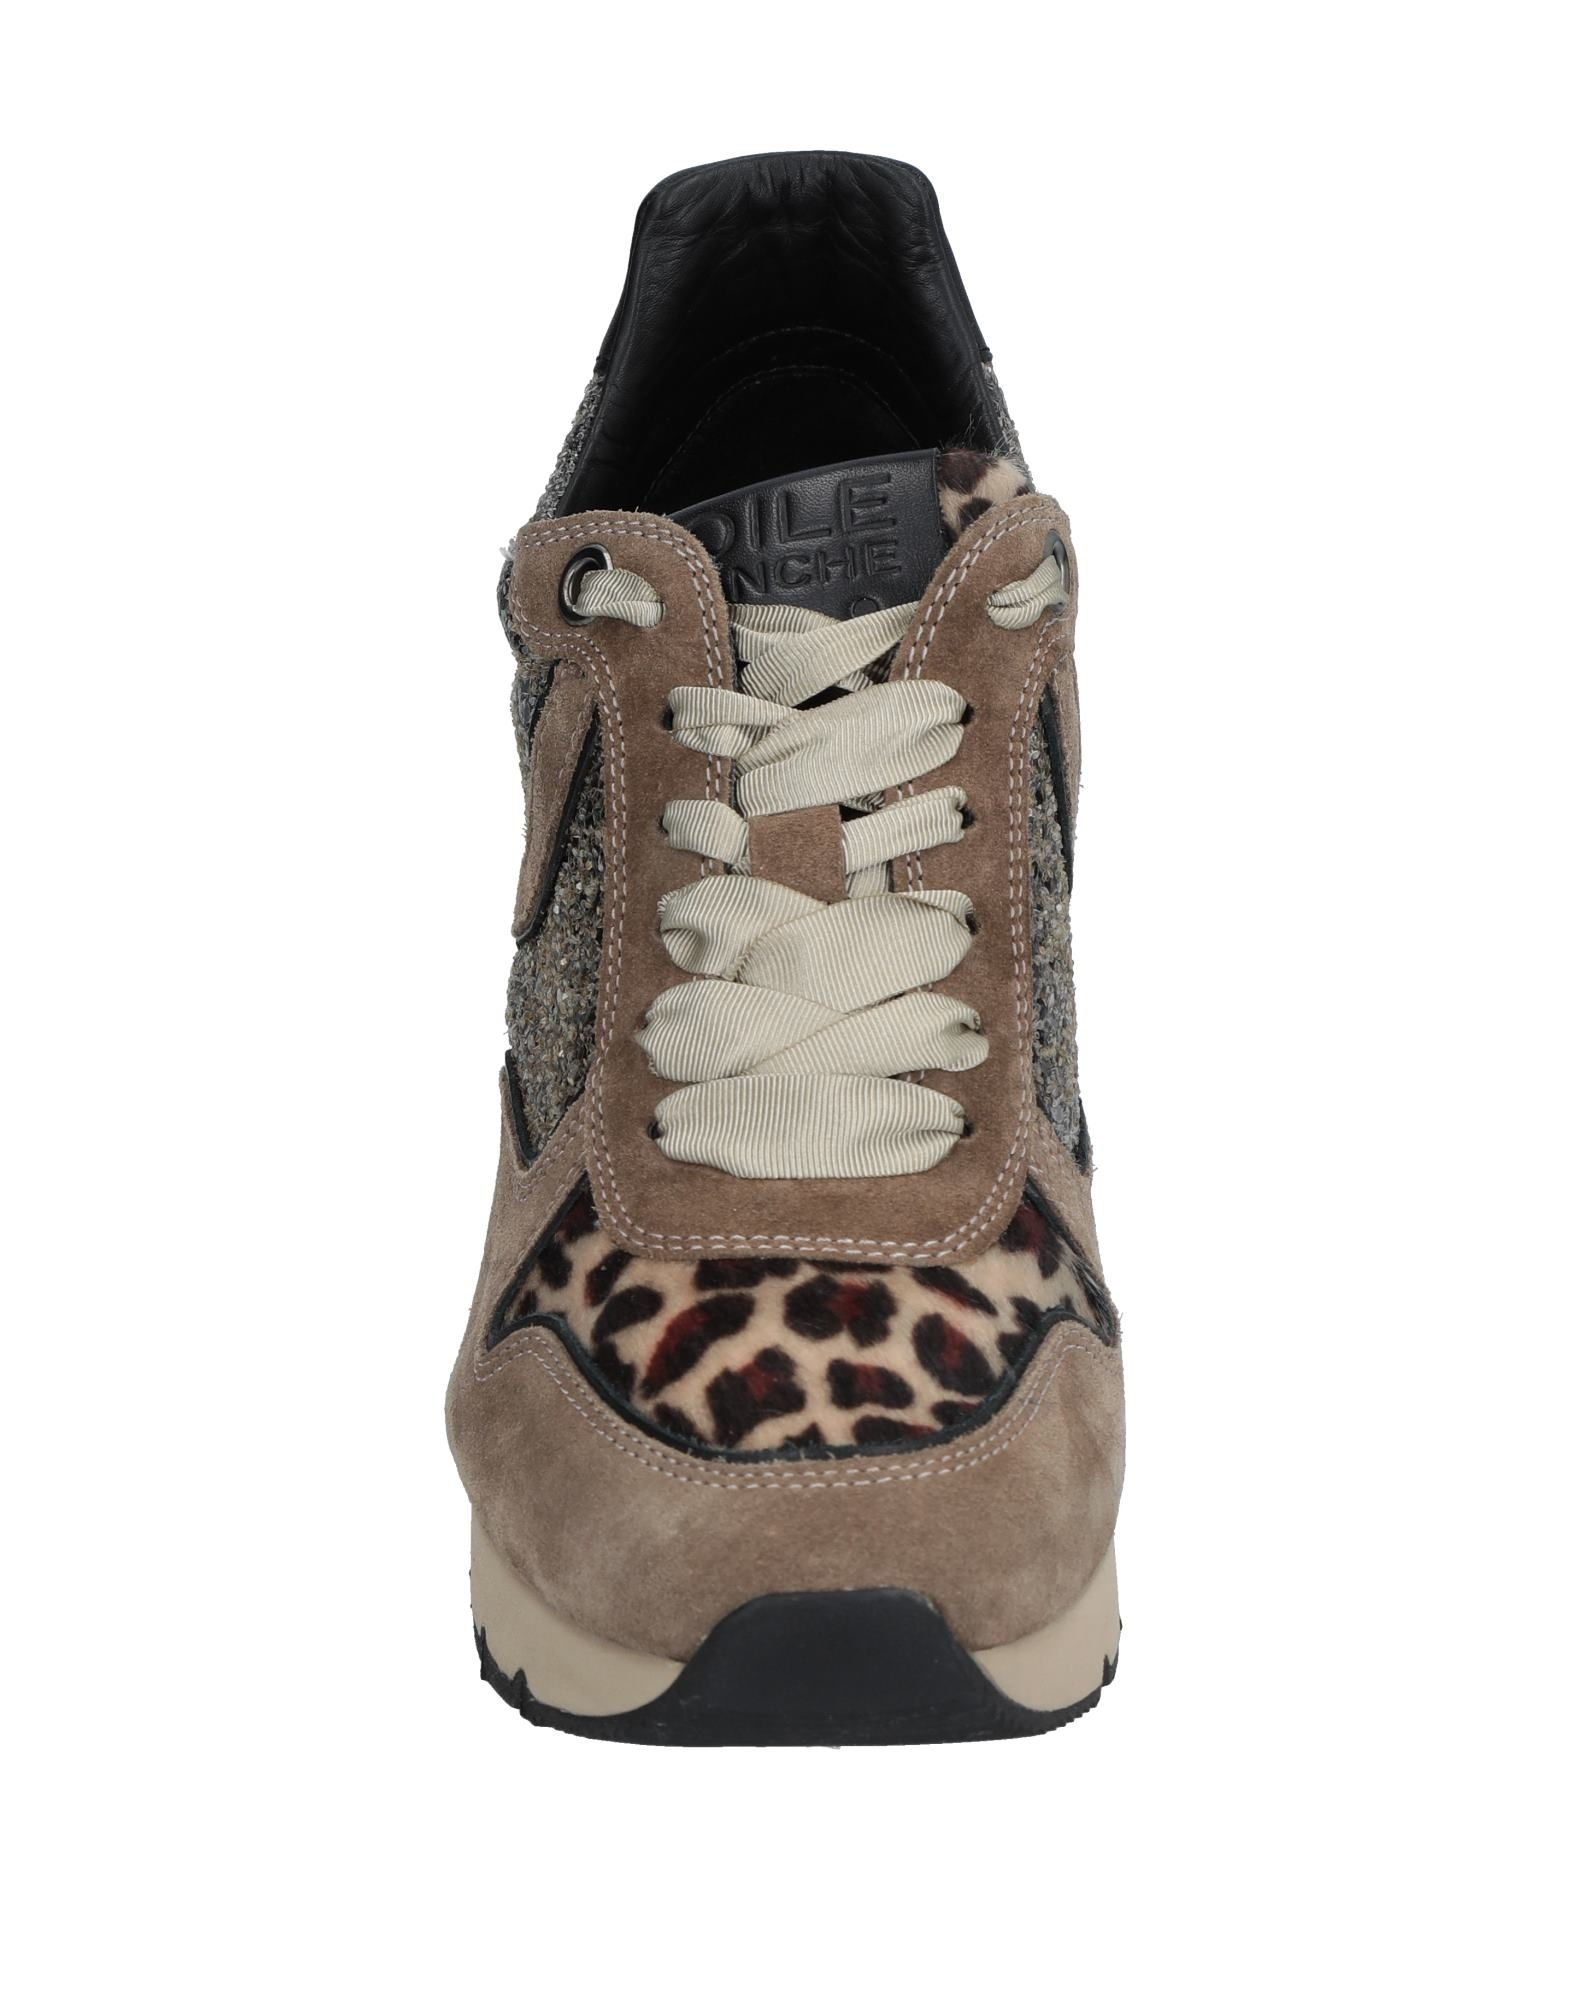 Pepe Jeans Sneakers Sneakers - Women Pepe Jeans Sneakers Sneakers online on  United Kingdom - 11538890AJ 5bdd39